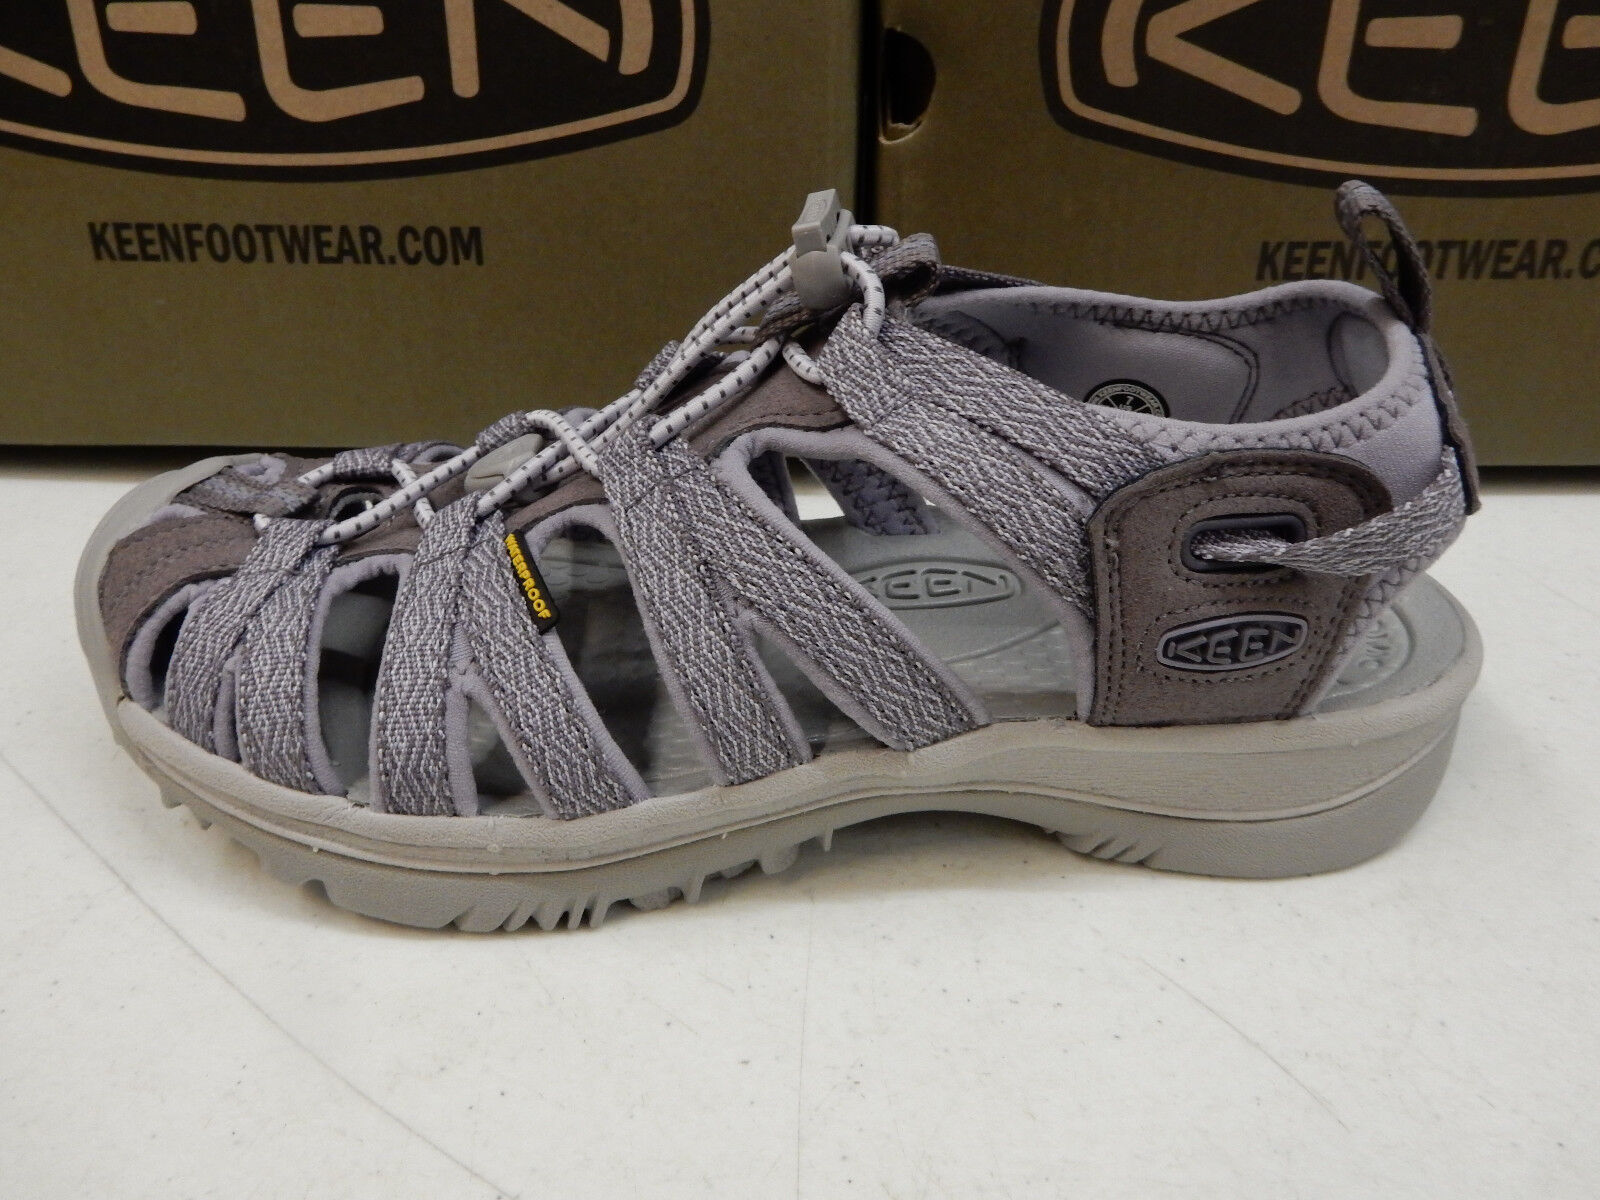 Keen Womens Whisper Shark Lavender Grey Size 8.5